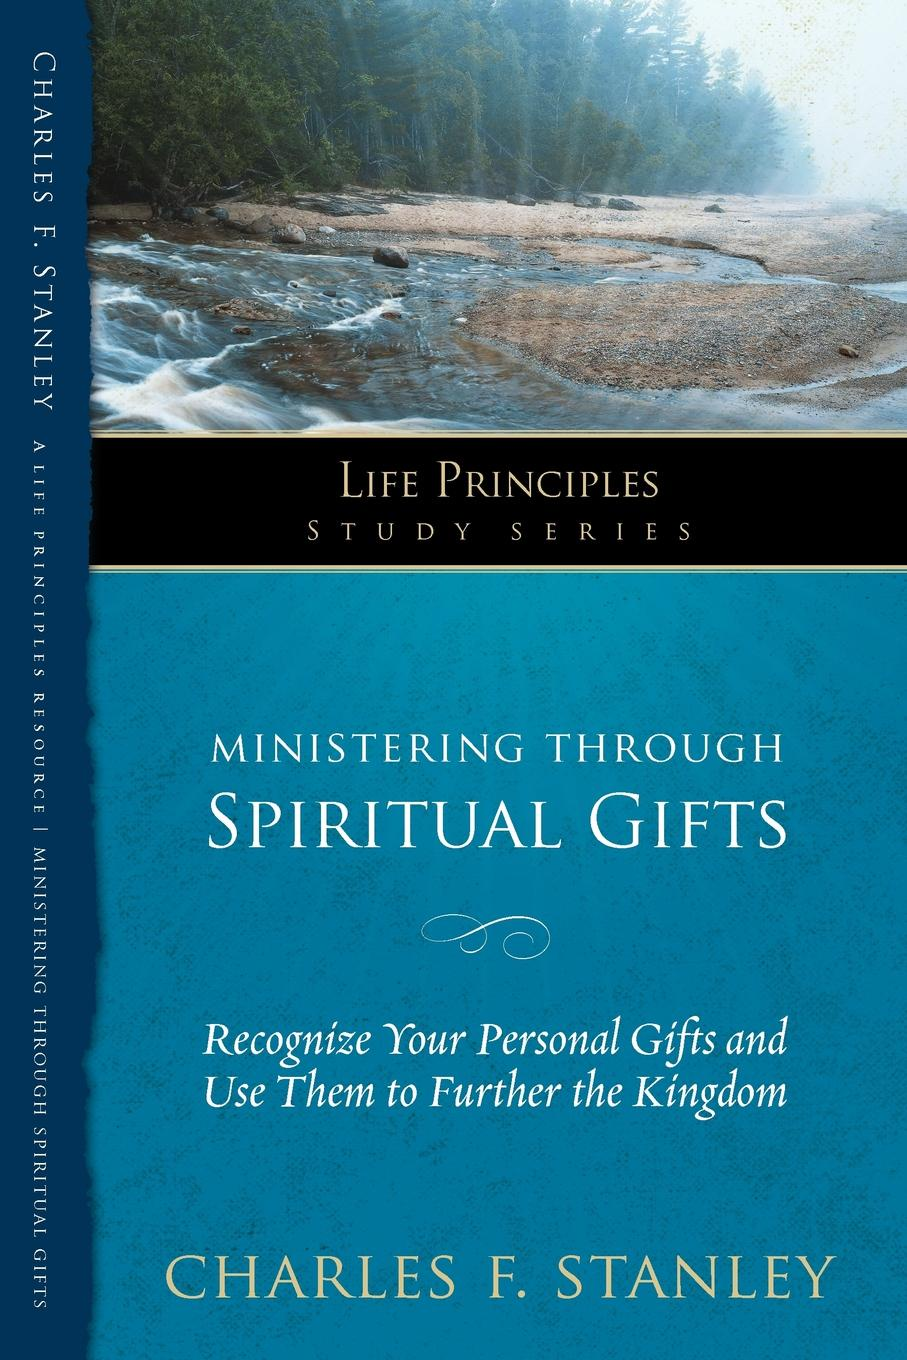 Thomas Nelson Publishers, Charles F. Stanley Ministering Through Spiritual Gifts. Recognize Your Personal Gifts and Use Them to Further the Kingdom